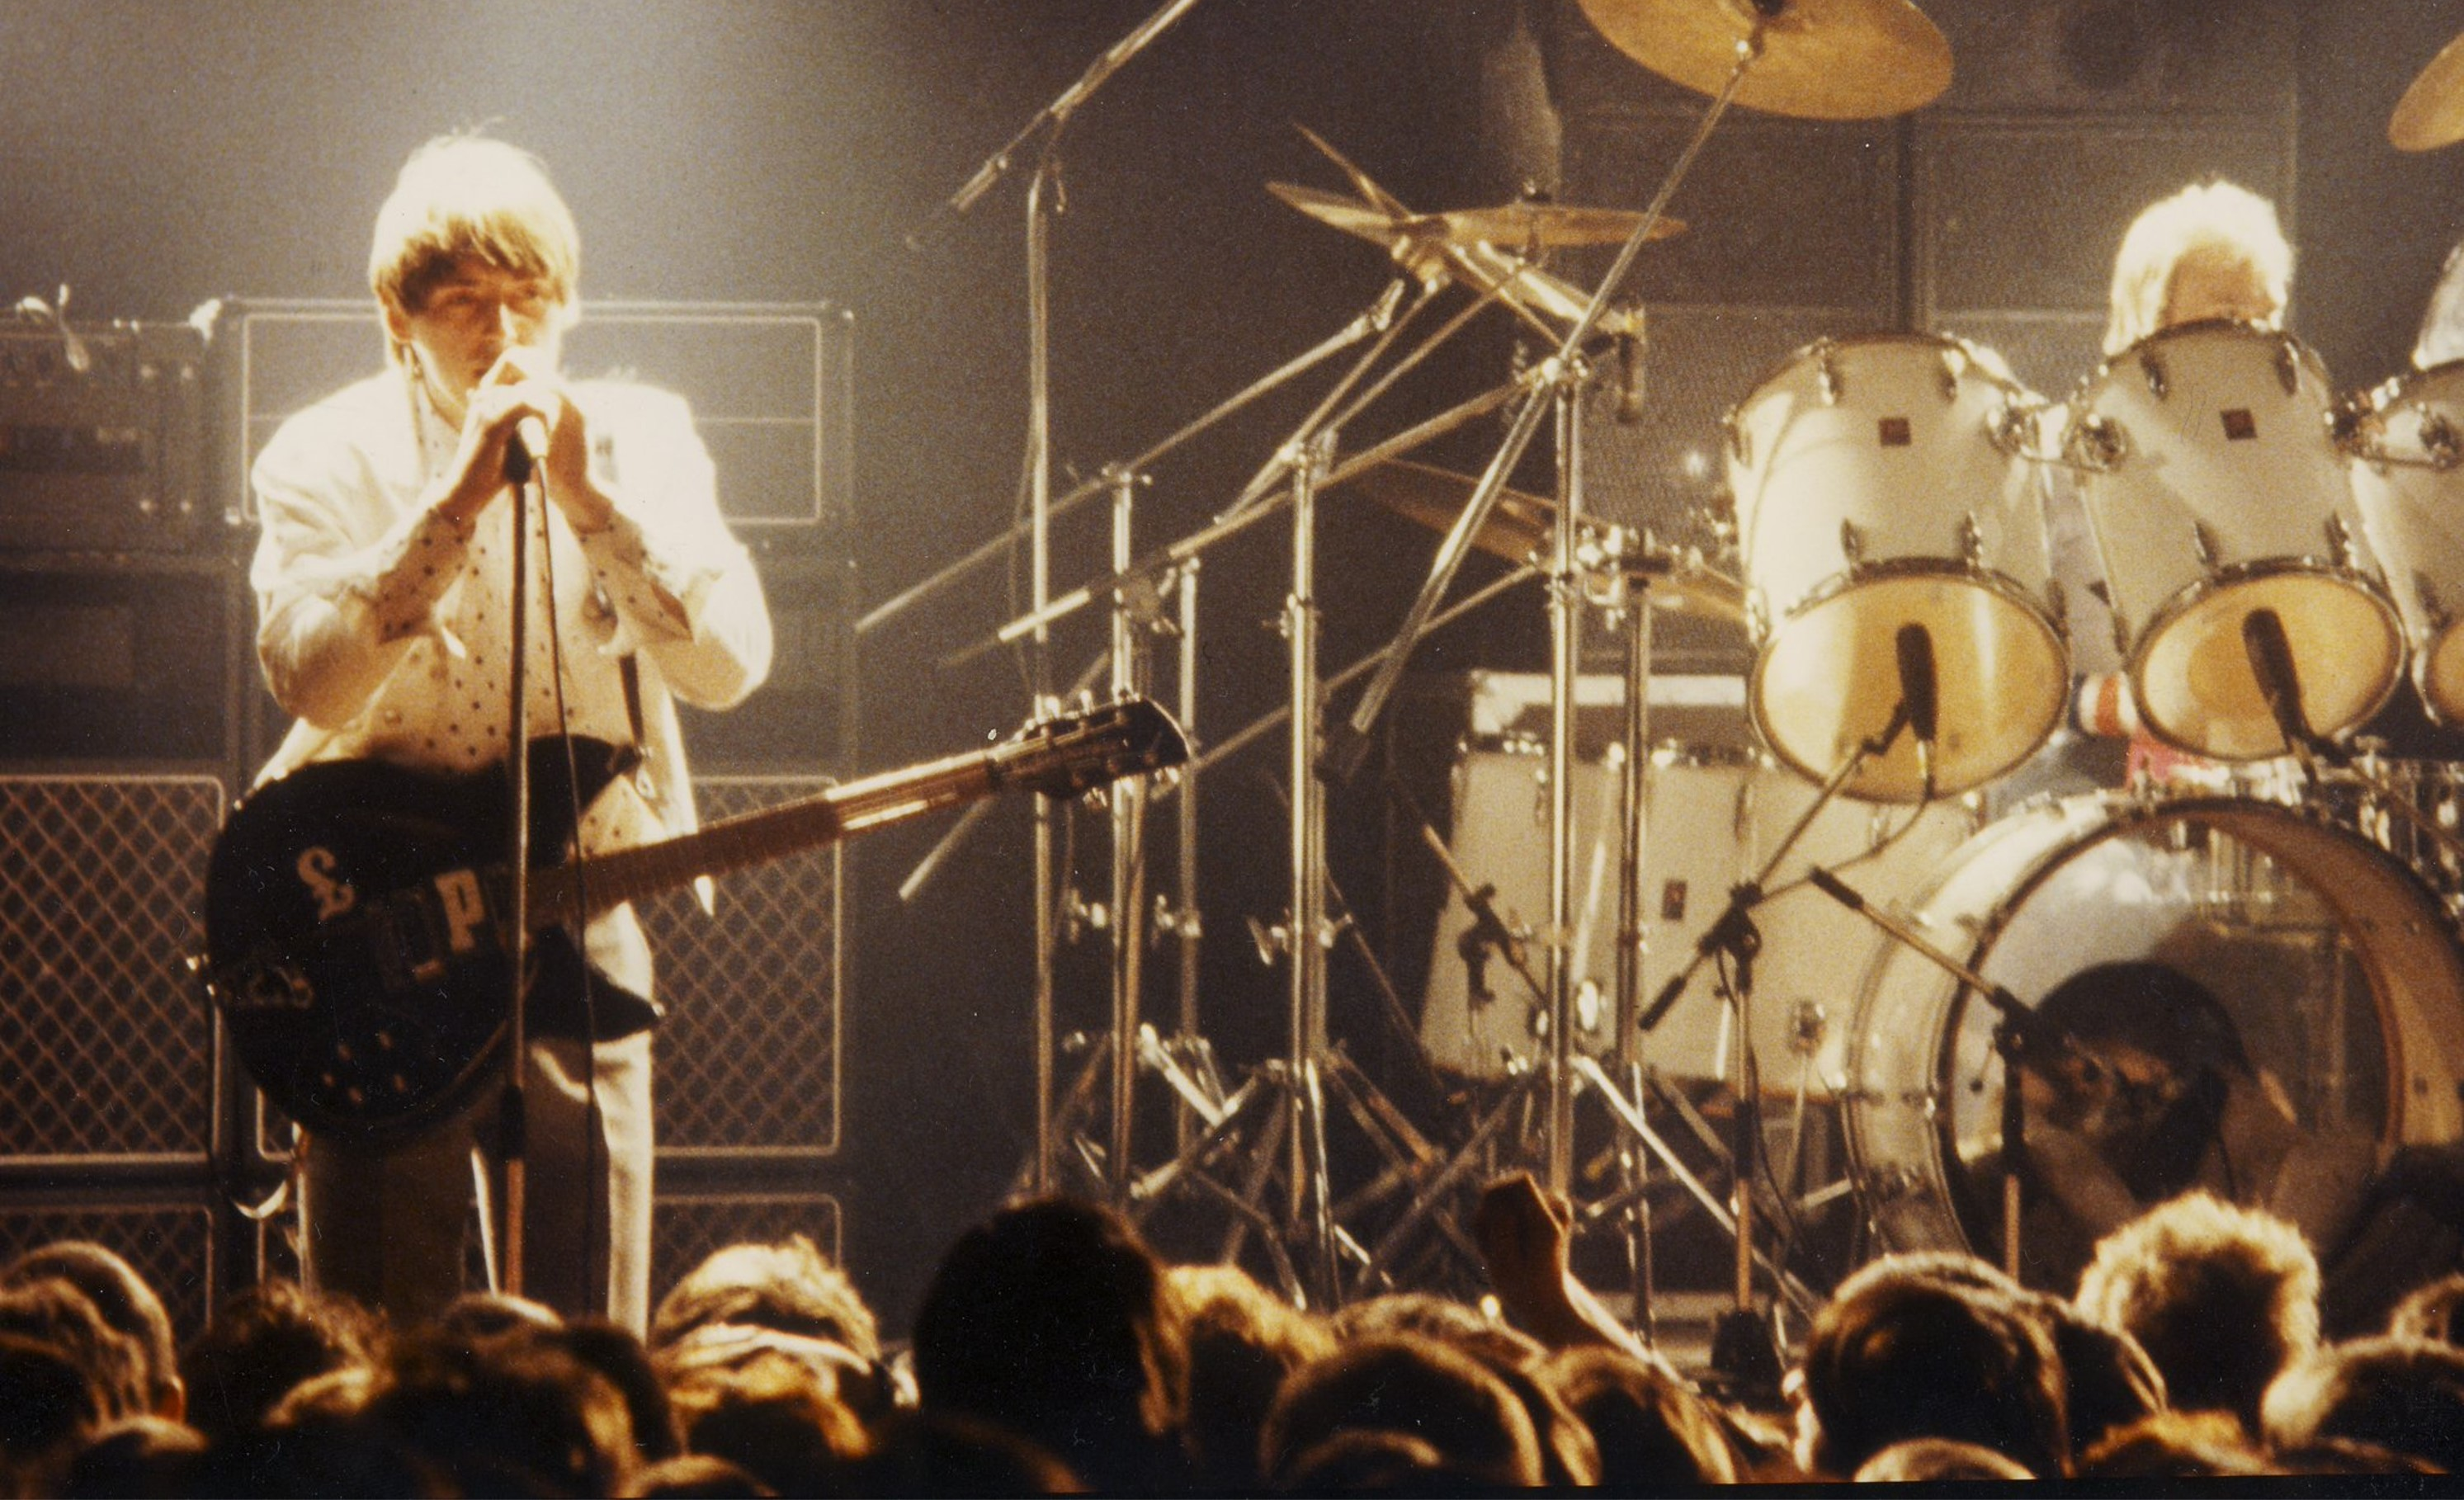 The Jam at UEA in 1981